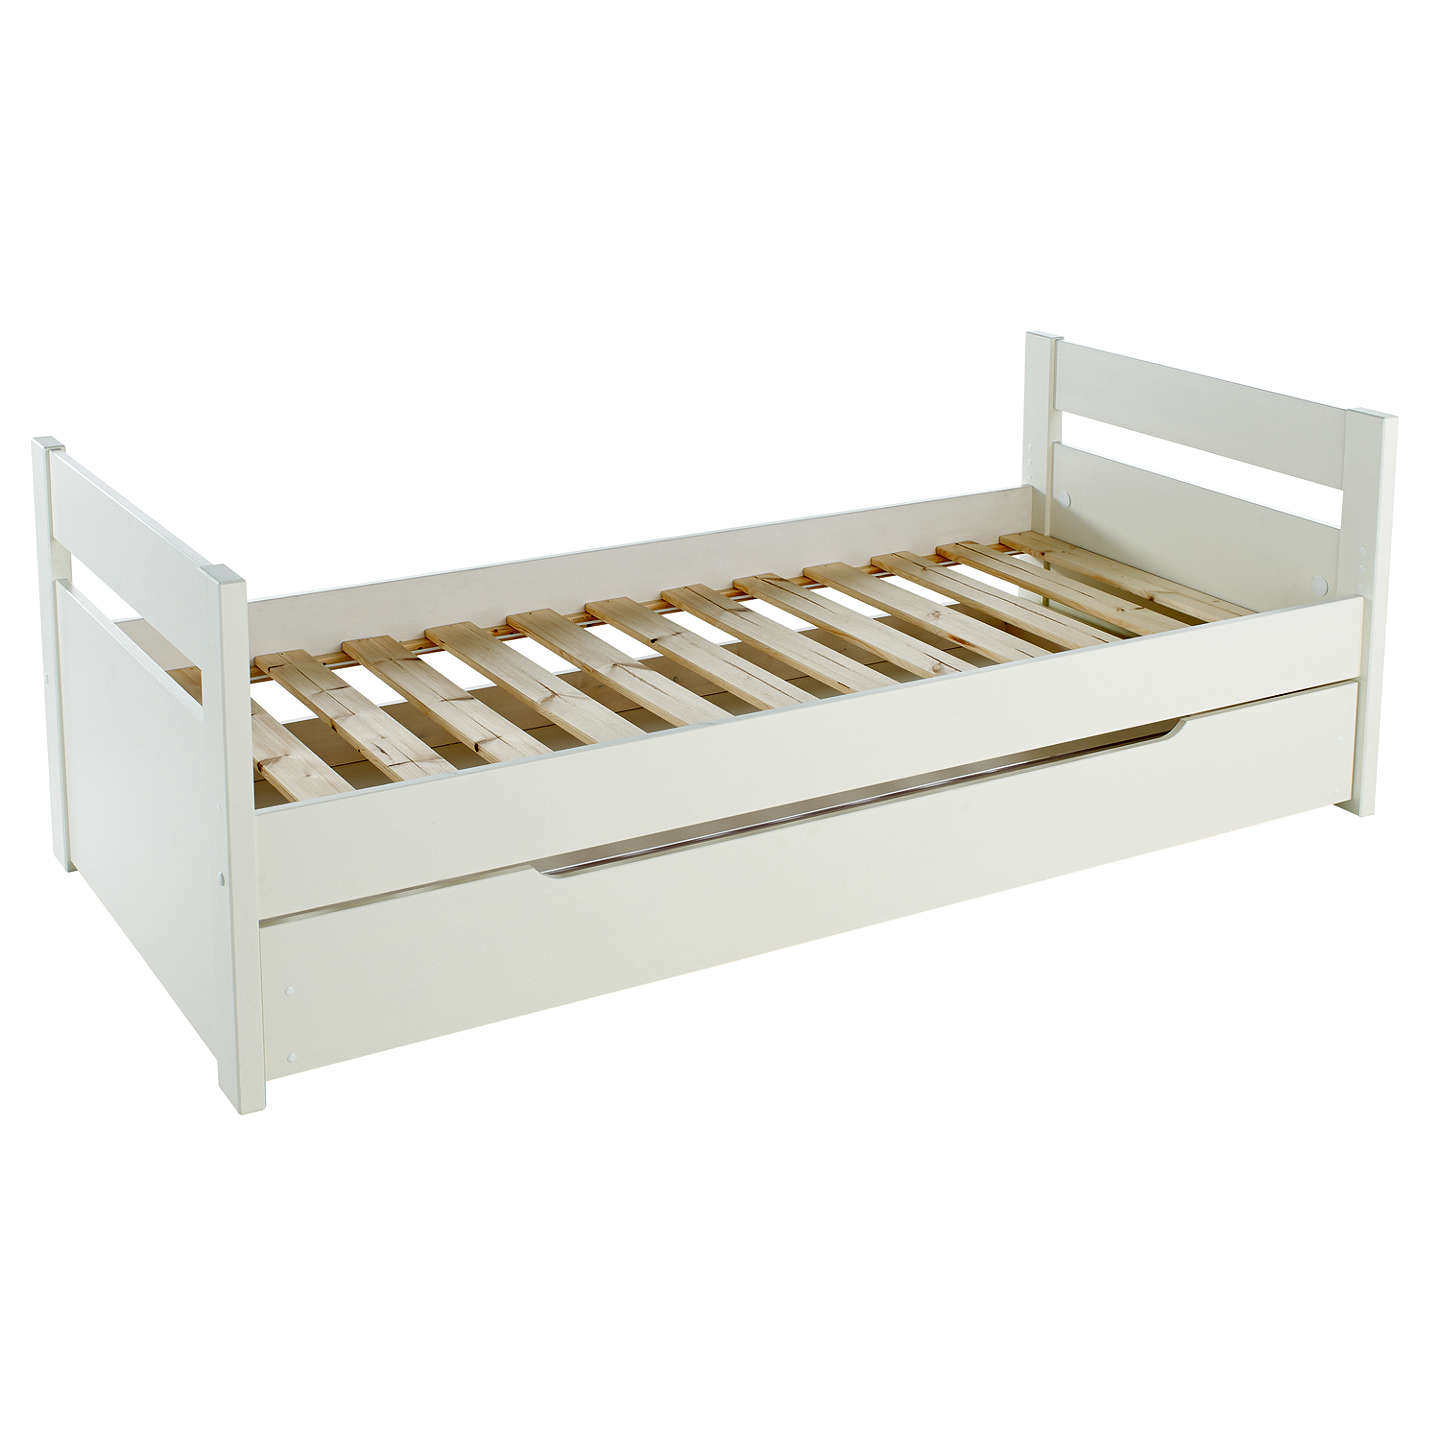 Stompa Originals Guest Bed Frame and Trundle at John Lewis